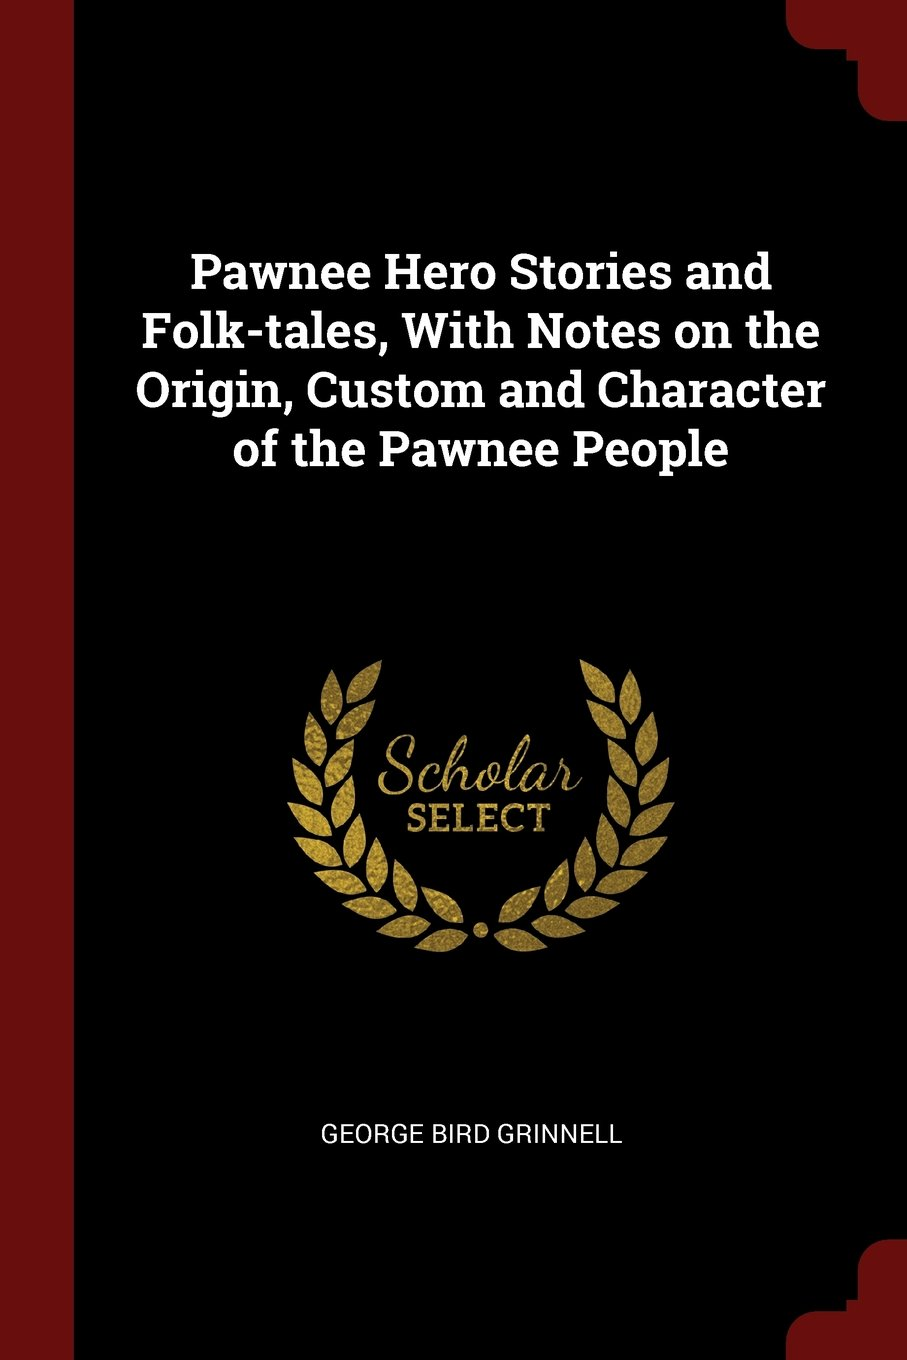 Pawnee Hero Stories and Folk-tales, With Notes on the Origin, Custom and Character of the Pawnee People pdf